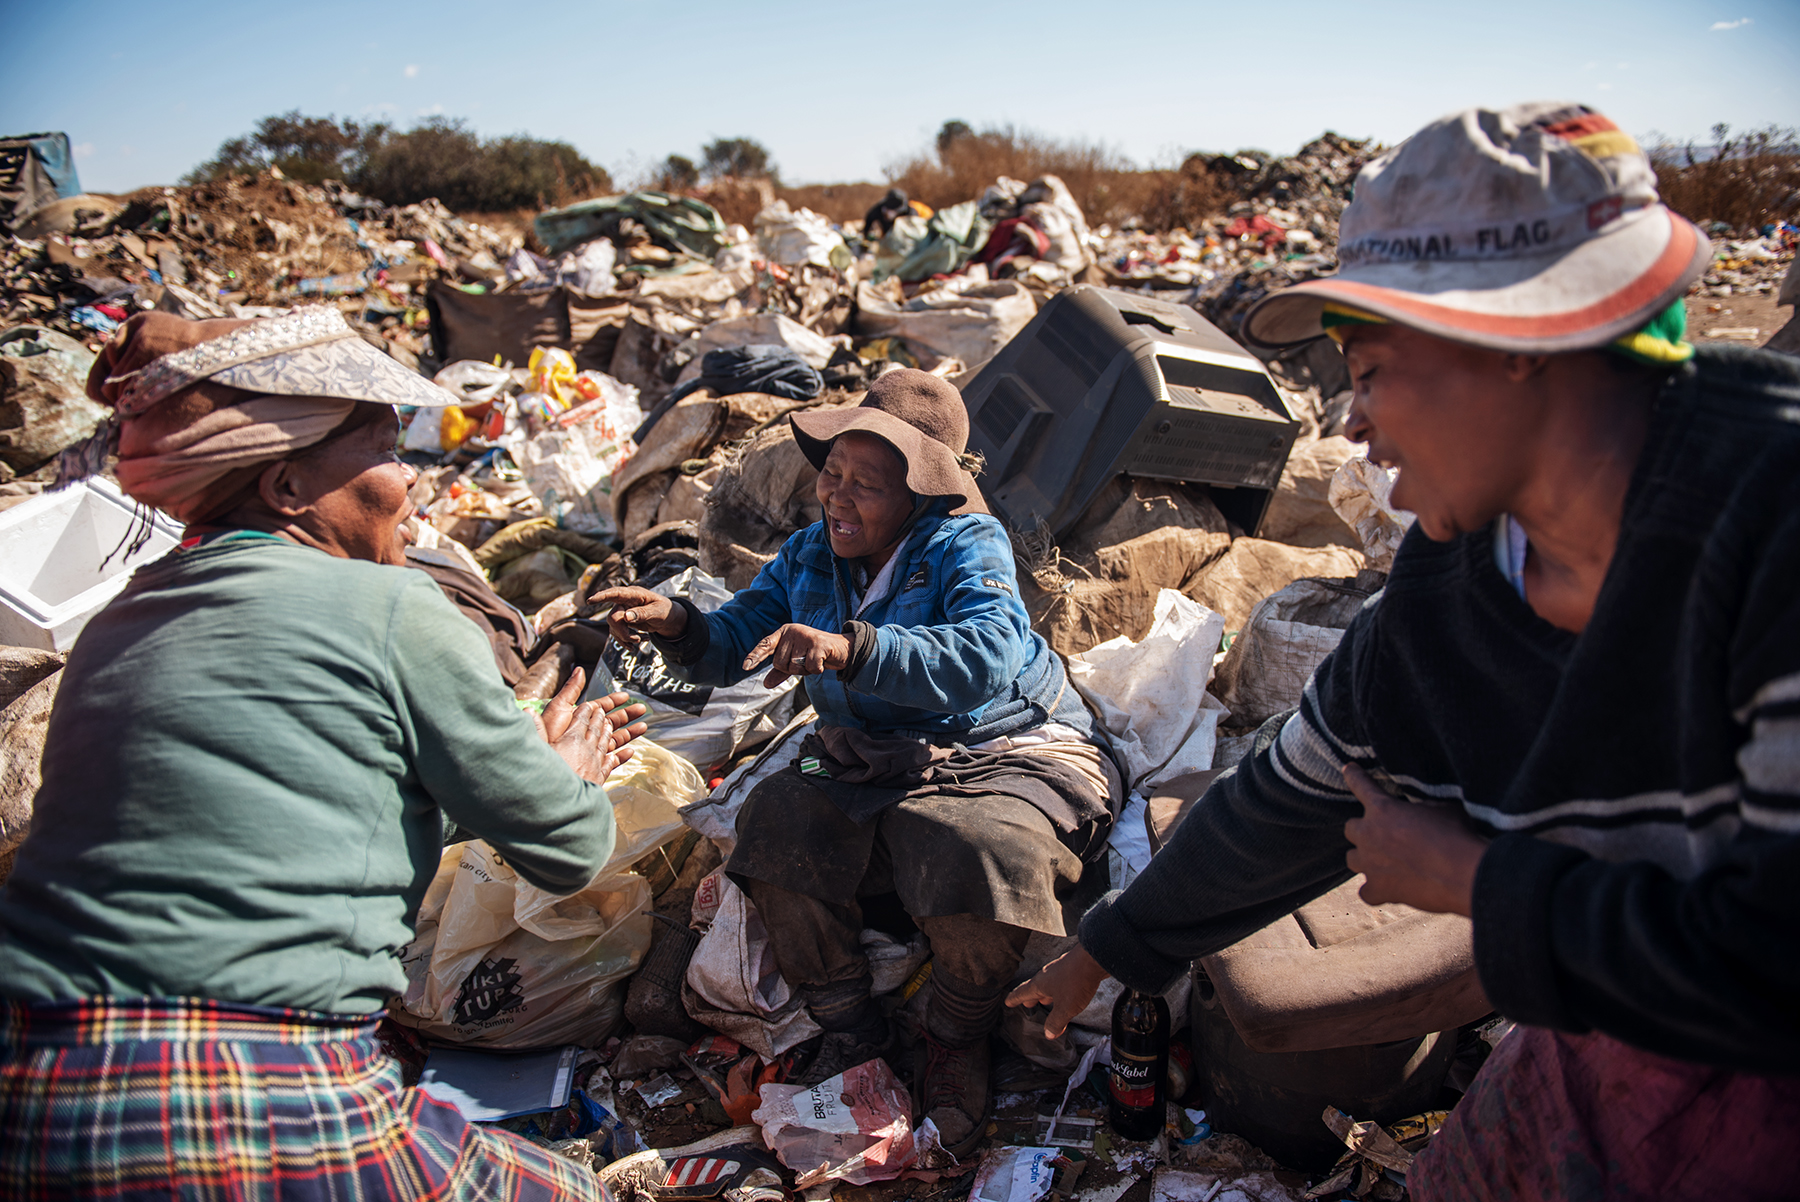 Malerato Mphuthi (L), Maria Makoena (C) and an other woman reclaimer dance surrounded by sacks filled up of waste at the Palm Springs landfill in the outskirt of Johannesburg, South Africa, on June 28, 2019.